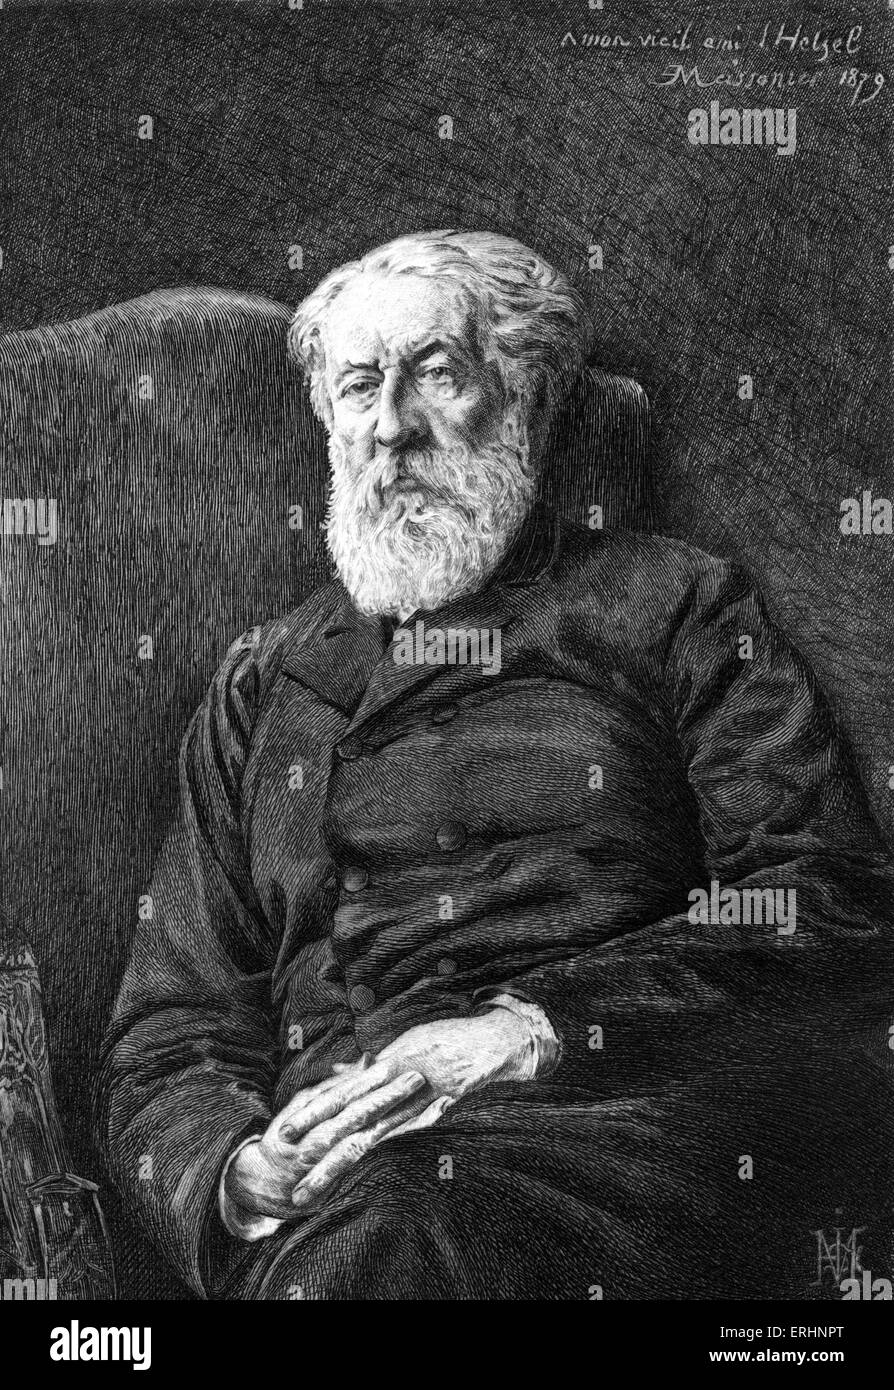 Pierre-Jules Hetzel by Meissonier 1879. (January 15, 1814 – March 17, 1886)   French editor and publisher. When - Stock Image